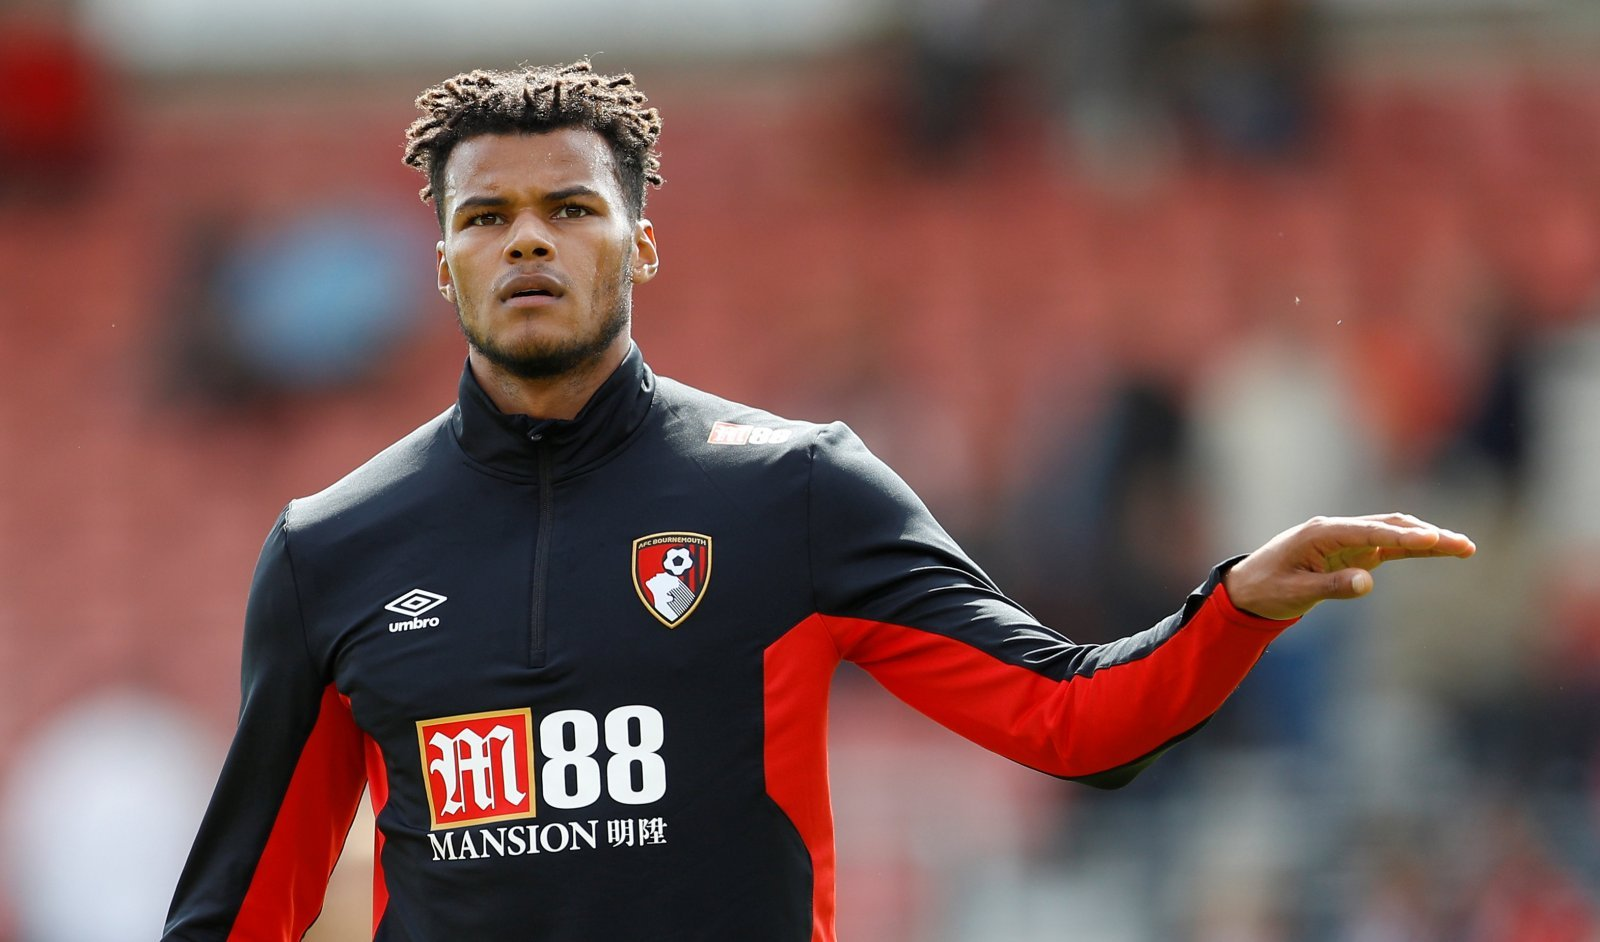 Aston Villa fans on Twitter call for Tyrone Mings to be signed permanently and made captain